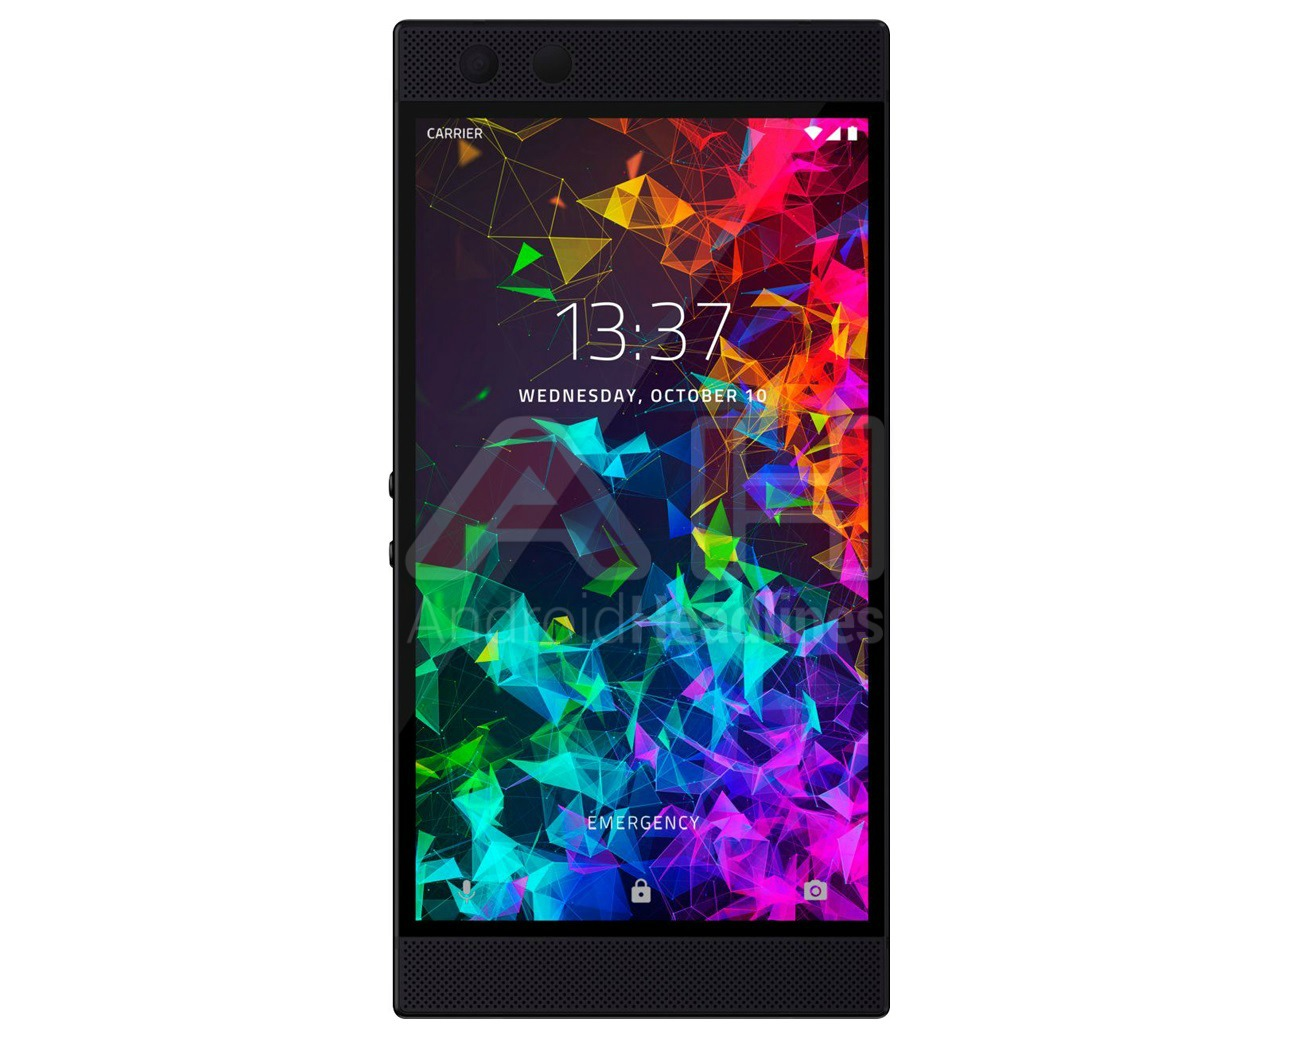 Razer Phone 2 will be announced a day after the Pixel 3